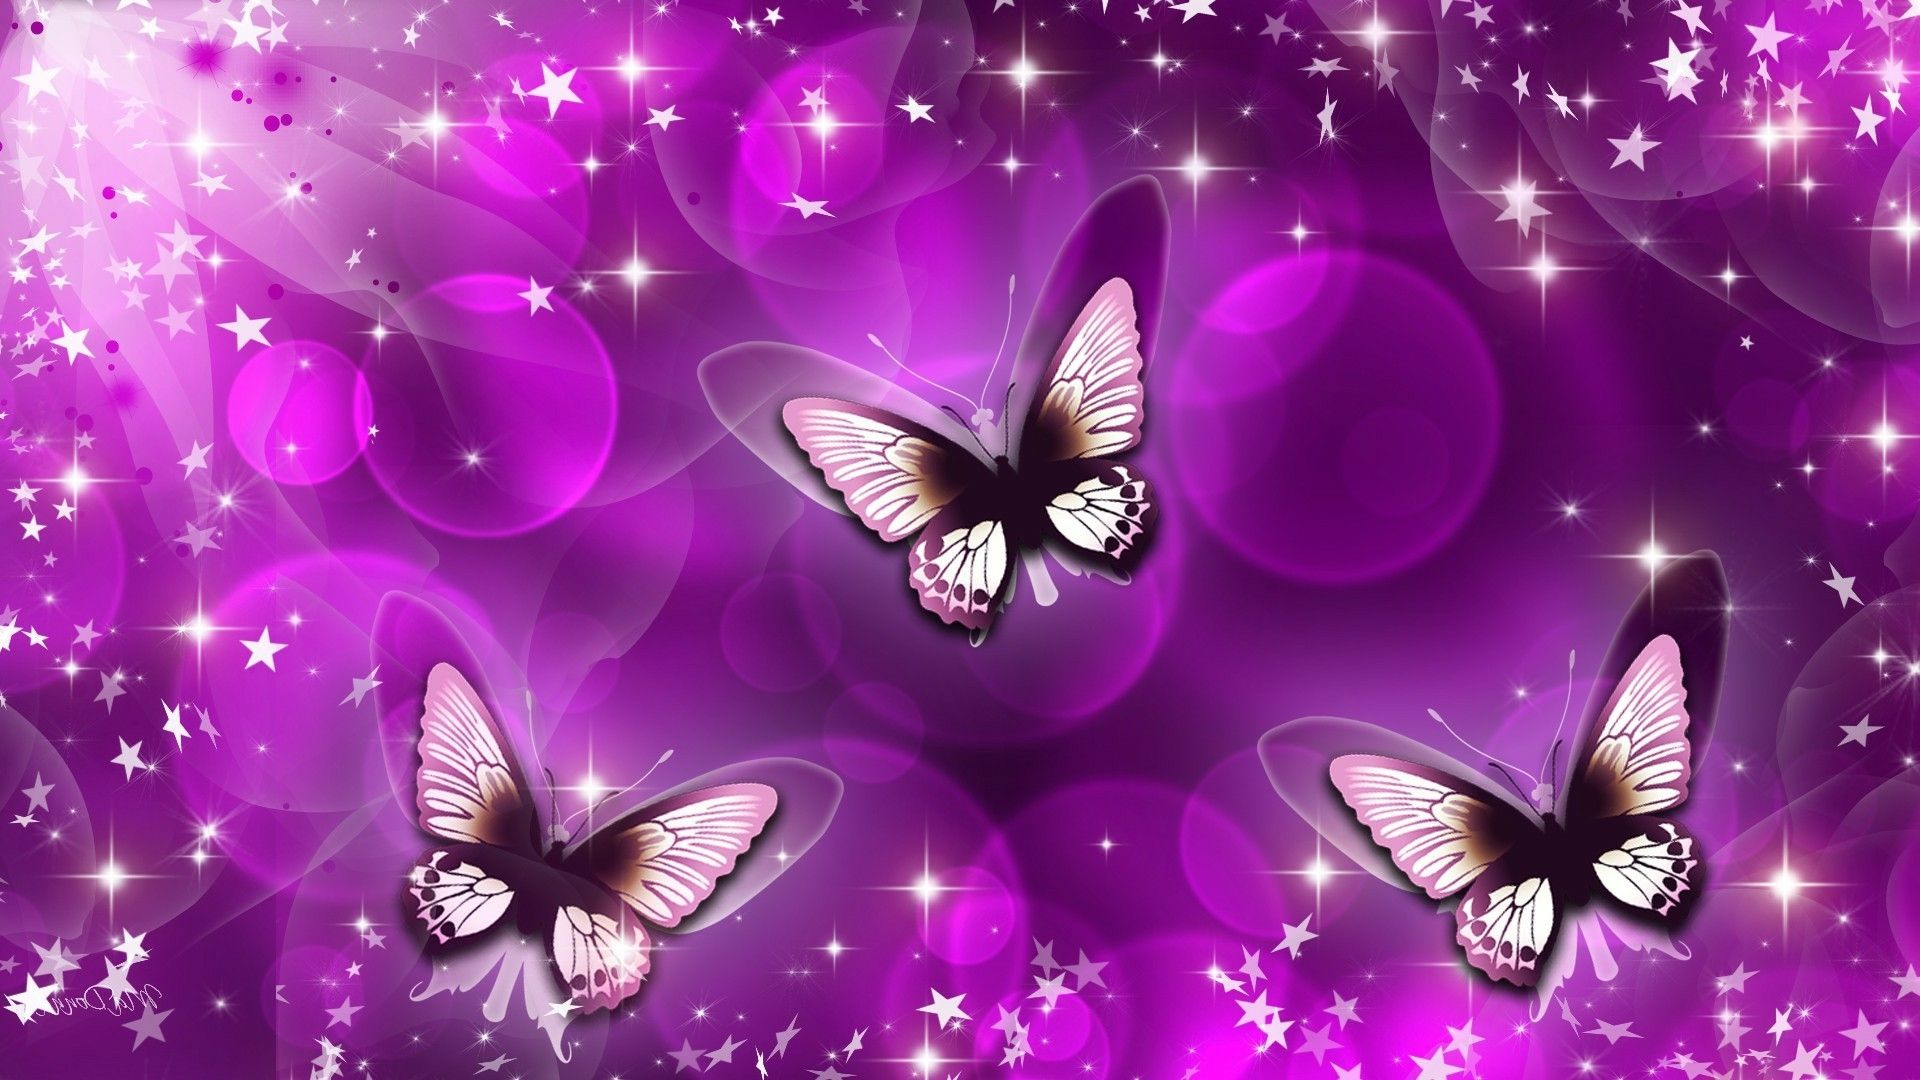 Animated Butterfly Wallpapers Top Free Animated Butterfly Backgrounds Wallpaperaccess